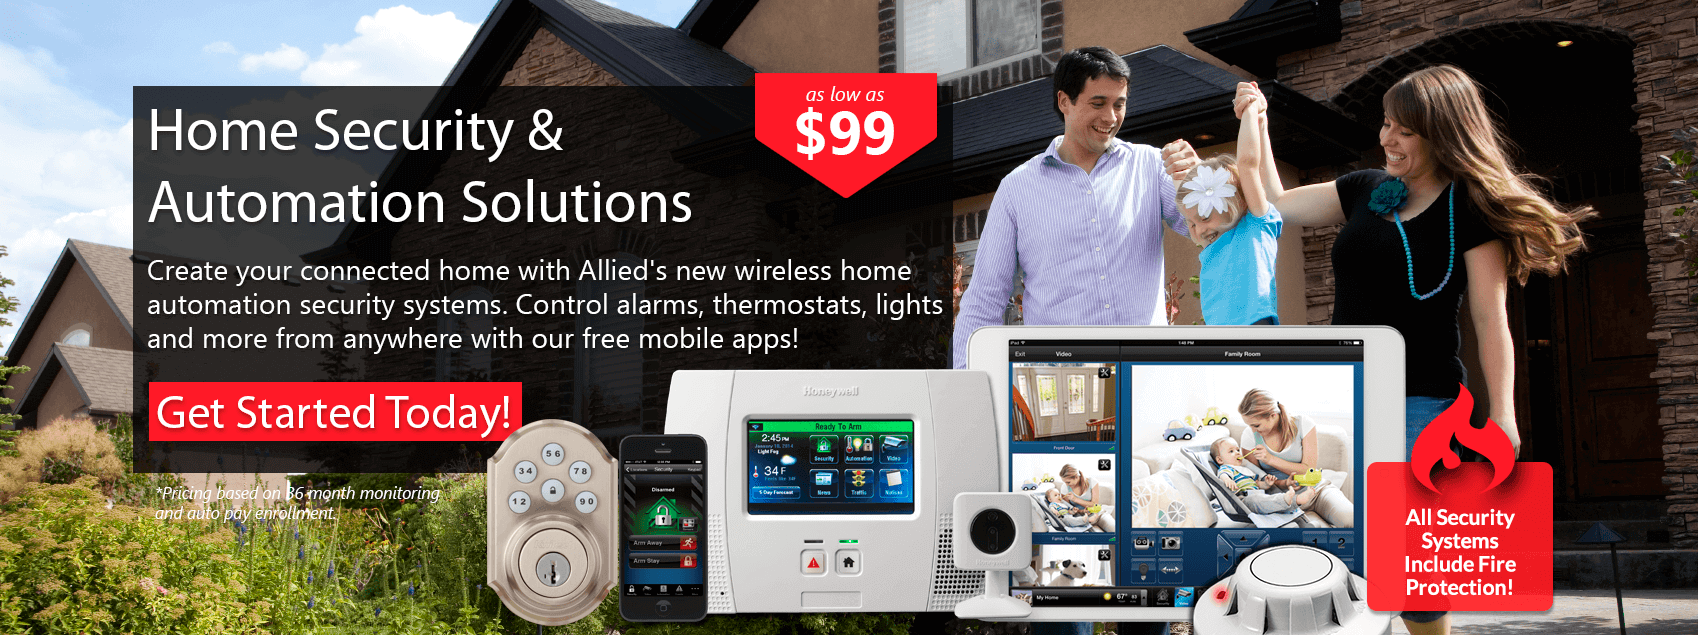 Home Security & Automation Solutions Banner